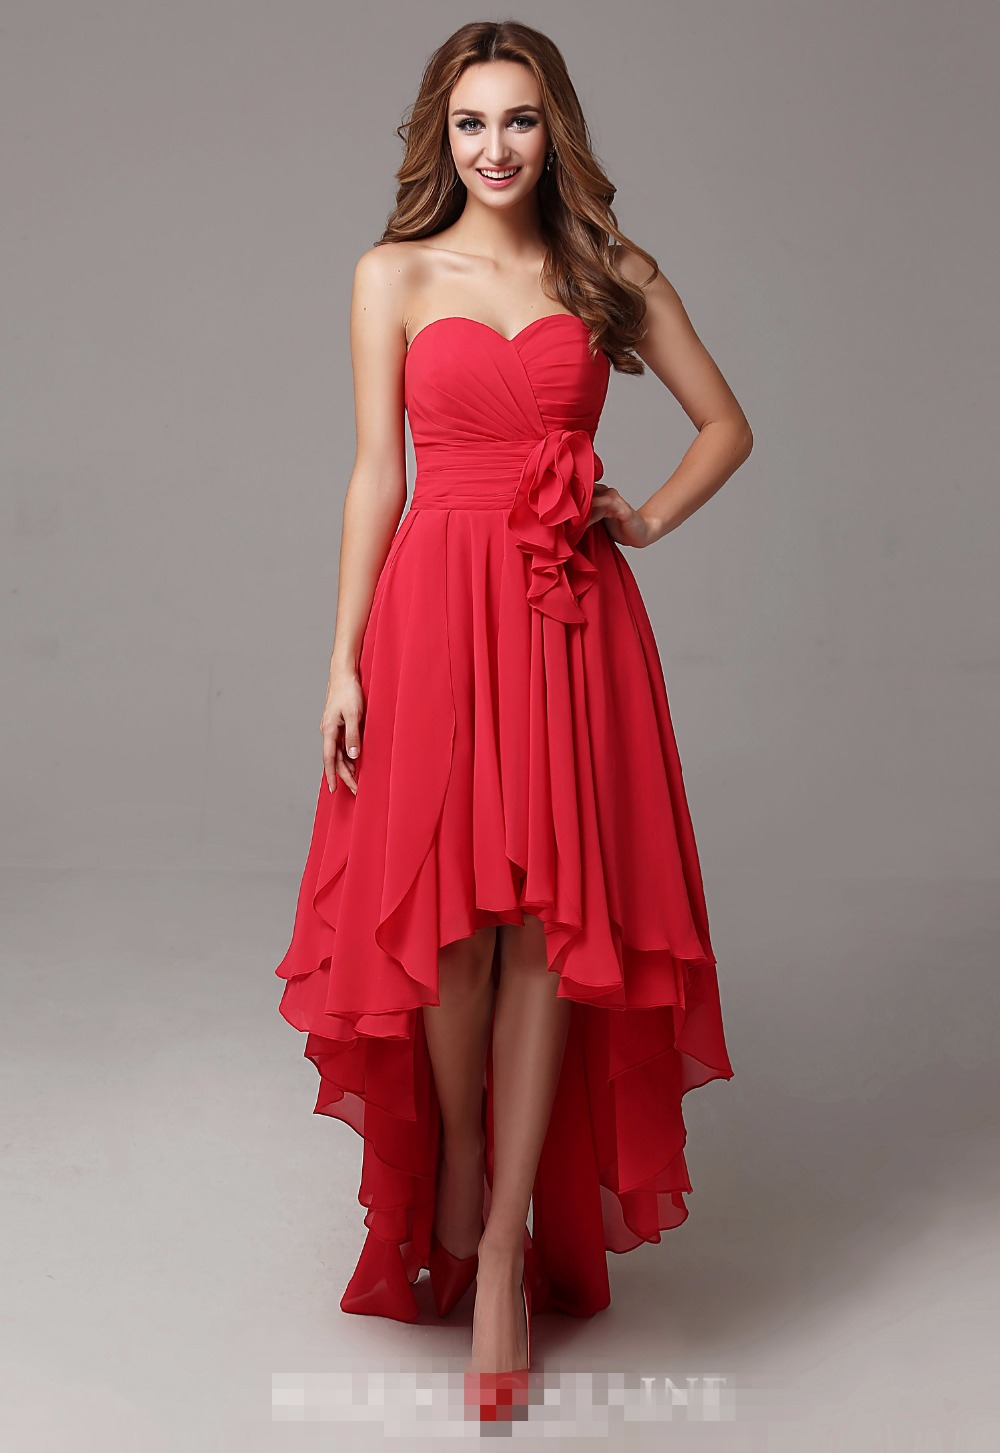 Online get cheap red low back bridesmaid dresses aliexpress 2017 real red high low bridesmaid dresses sweetheart pleats chiffon short front long back beach country ombrellifo Image collections